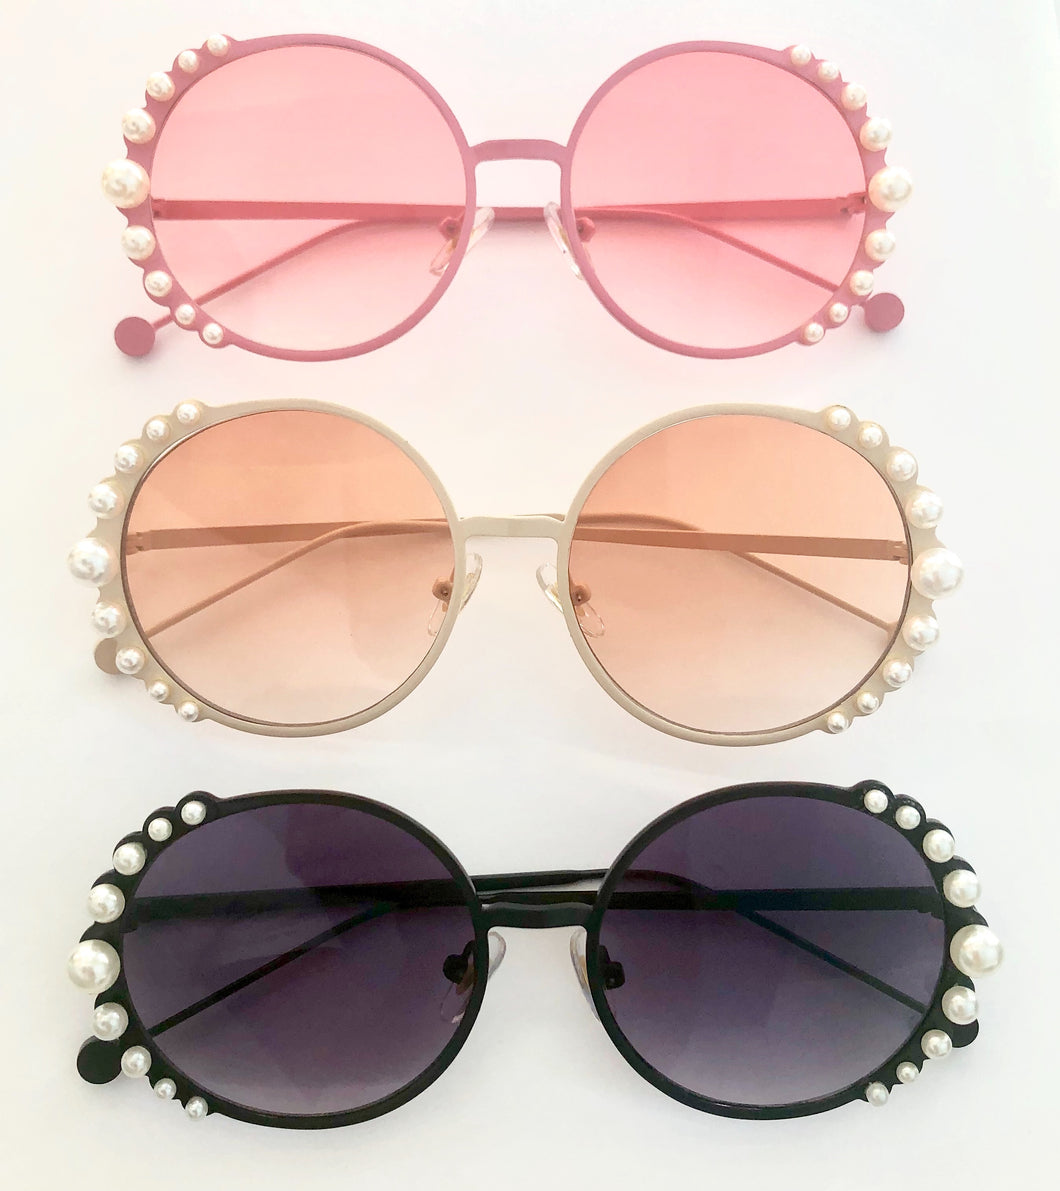 Pearl kids sunglasses